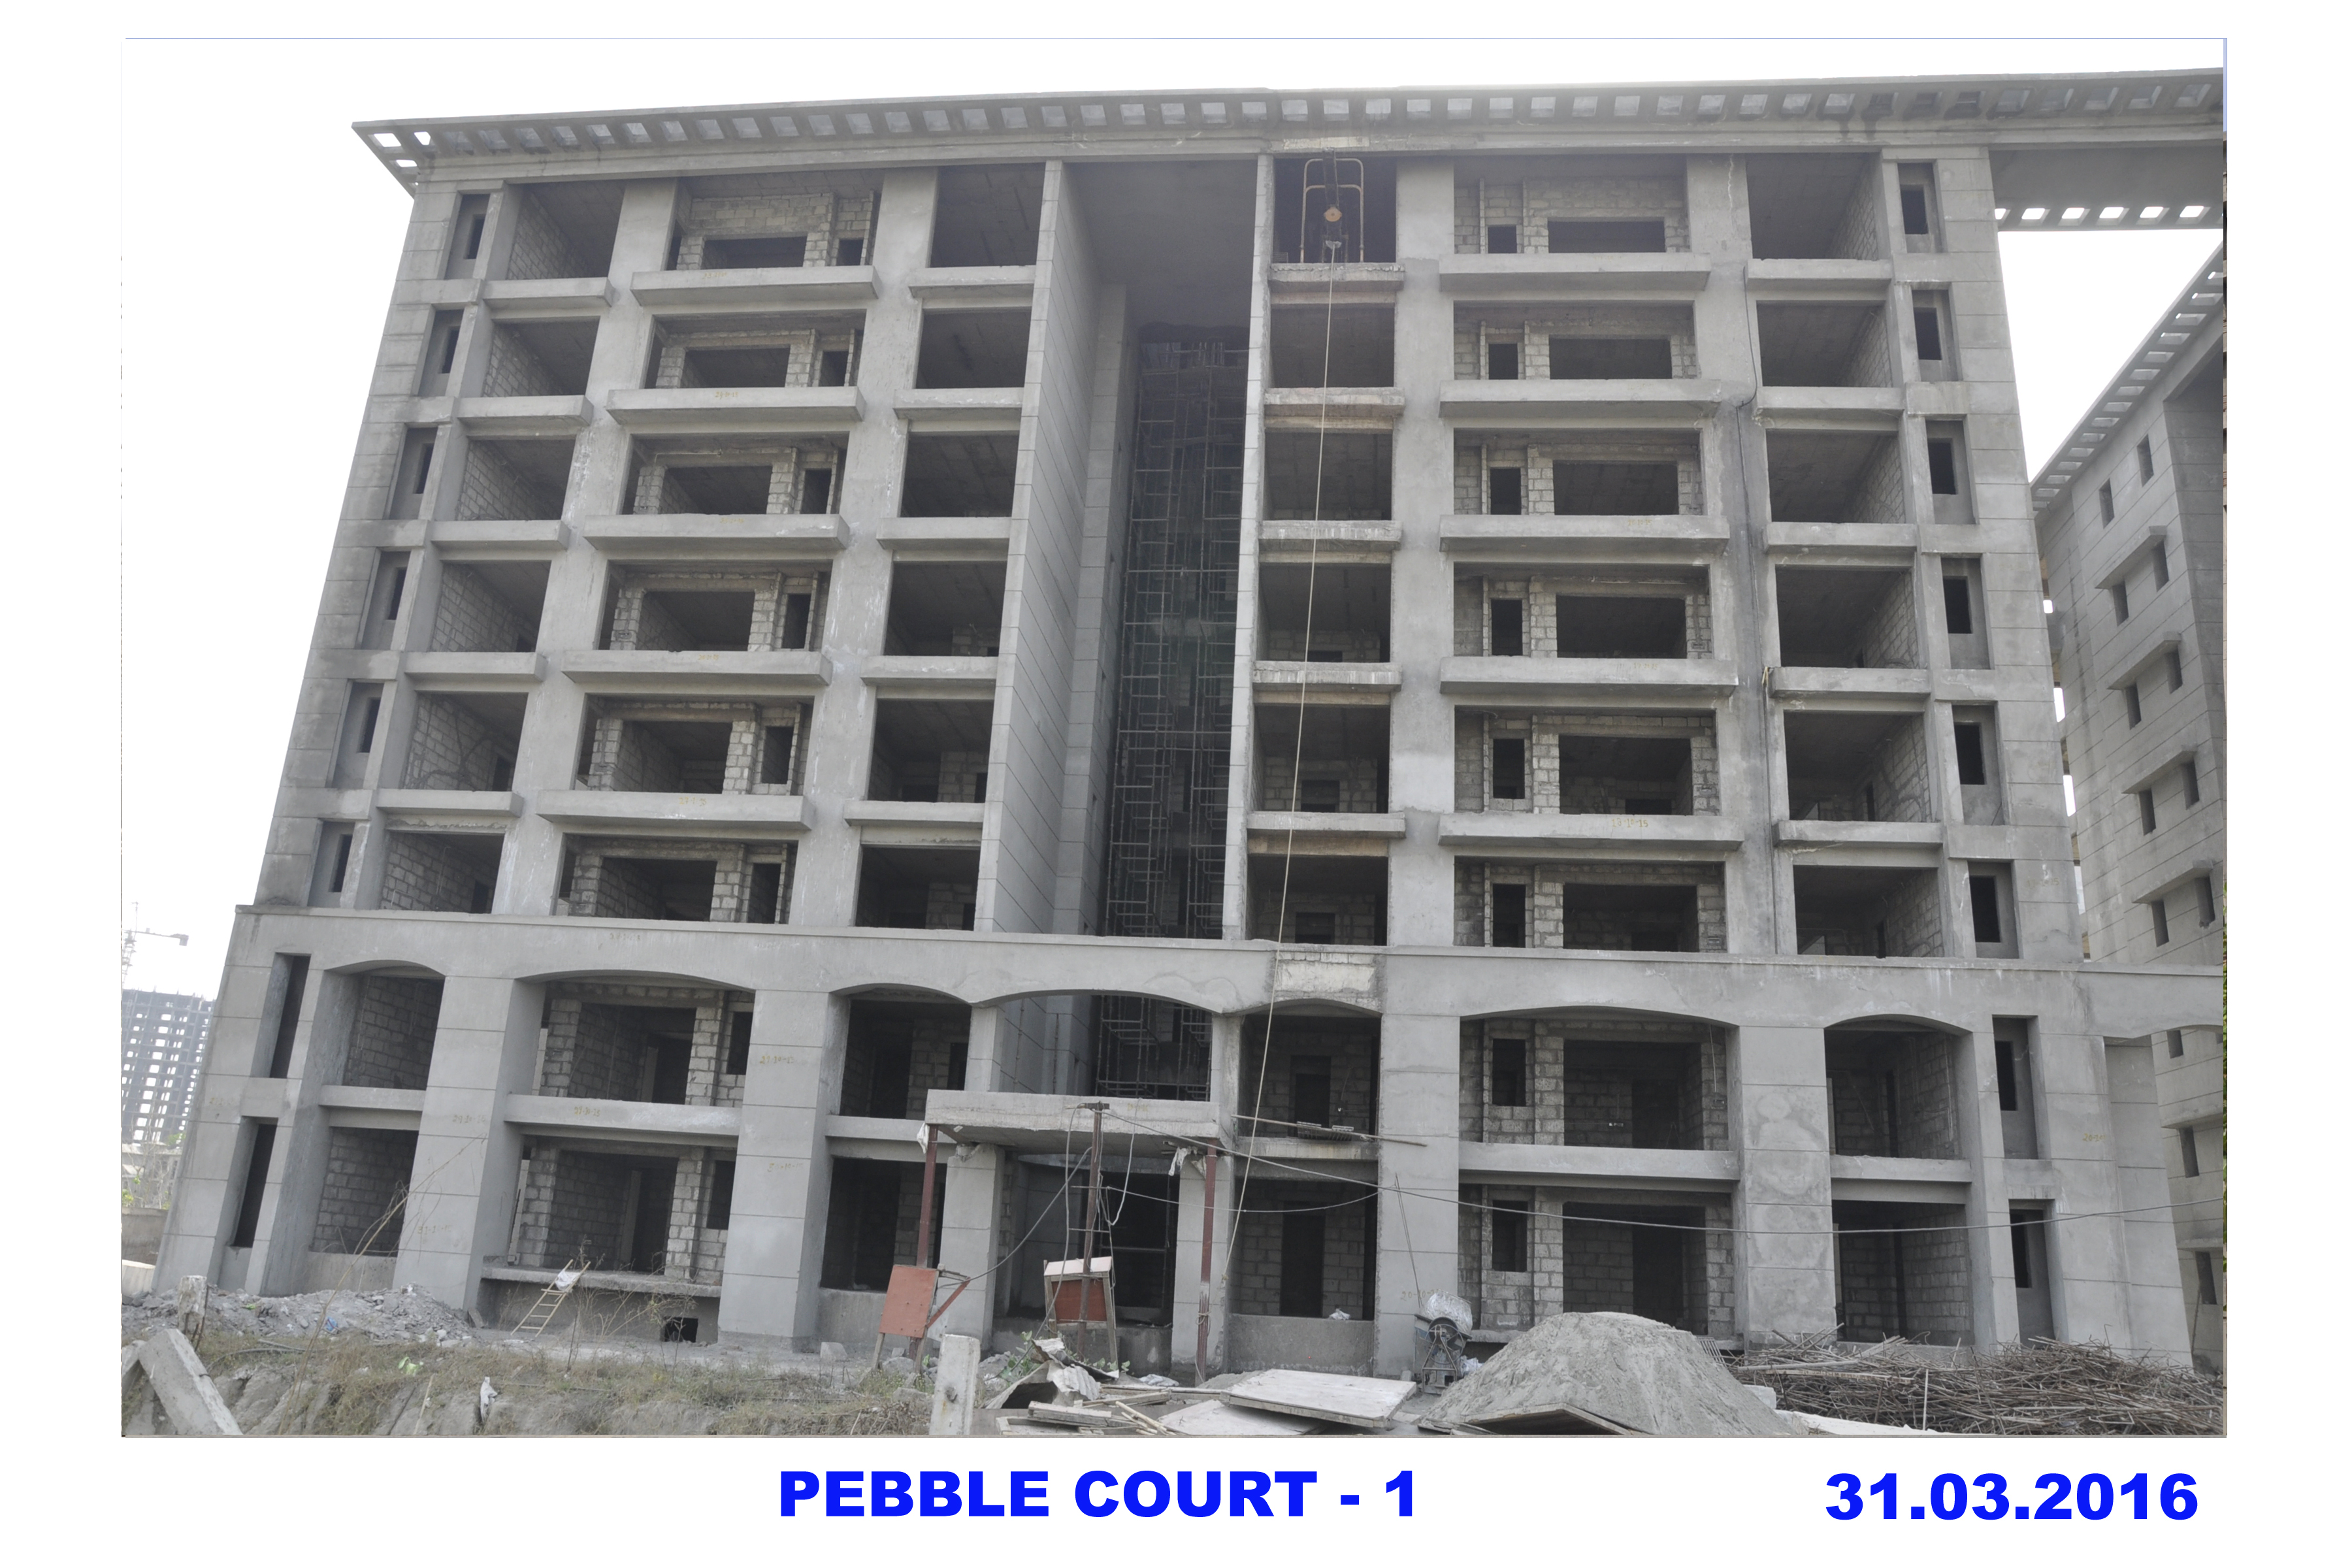 Pebble court Tower - 1